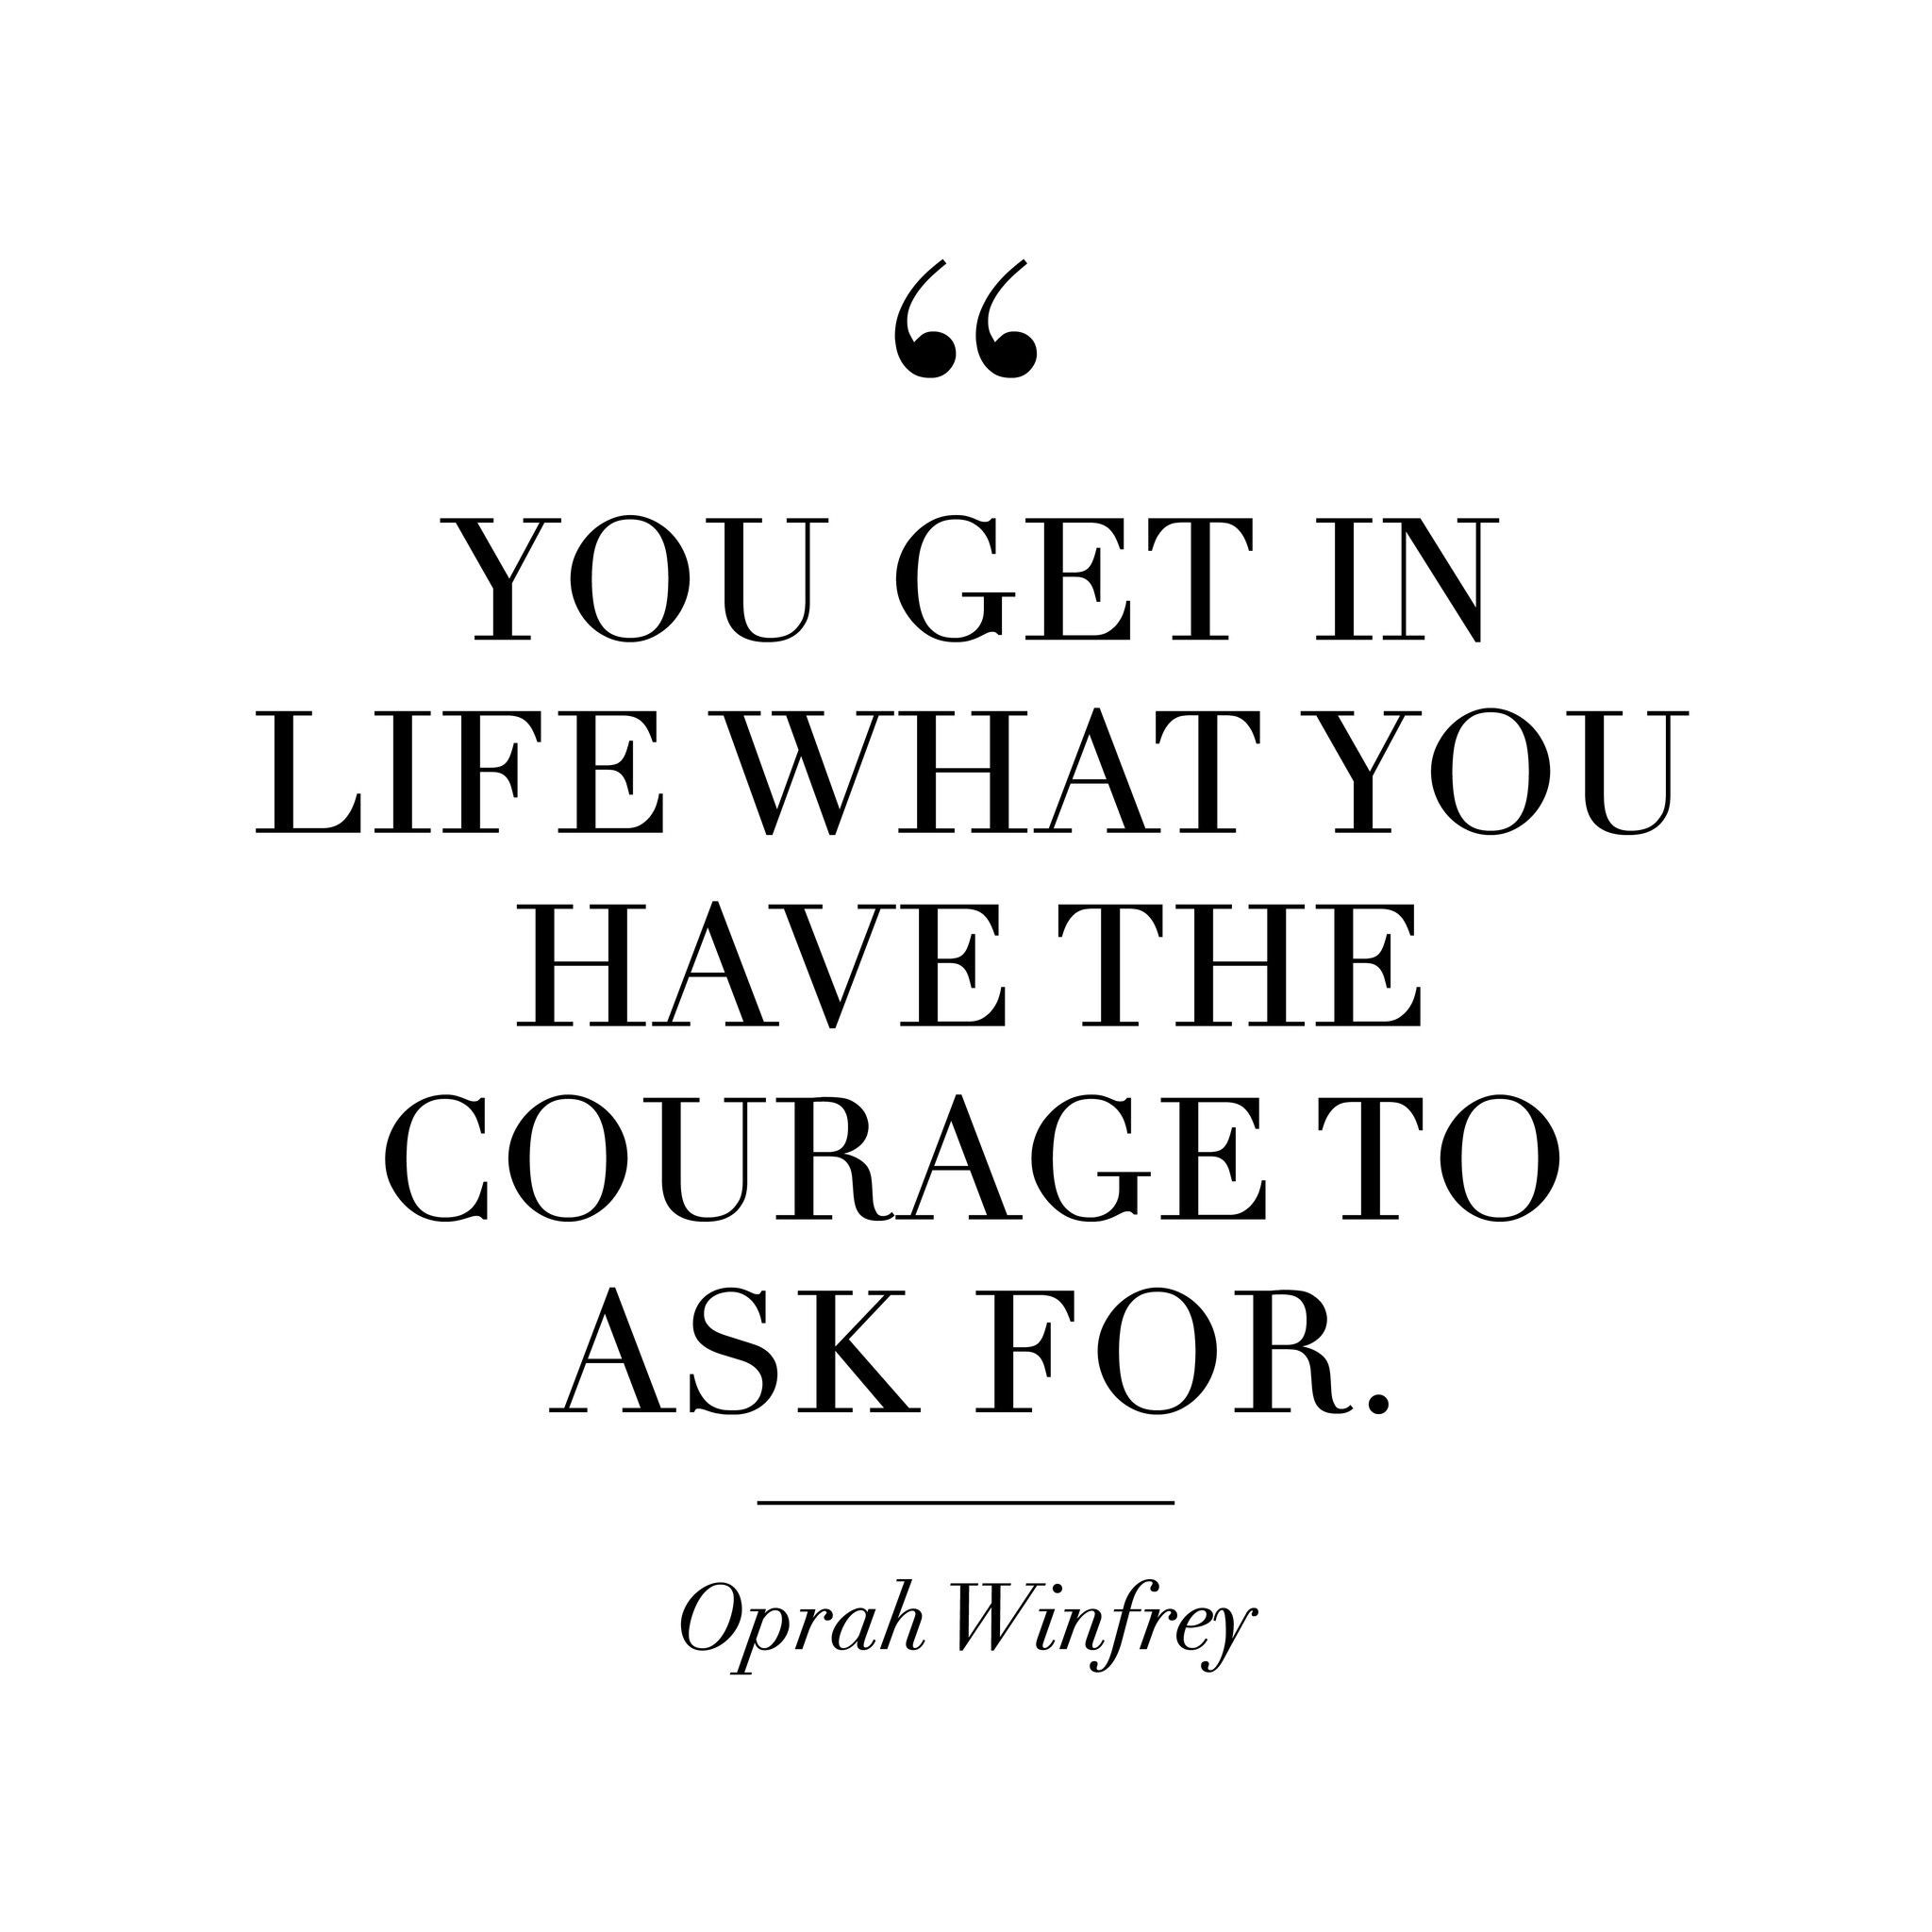 Inspirational Quotes For Women  8 Empowering Quotes by Inspirational Women